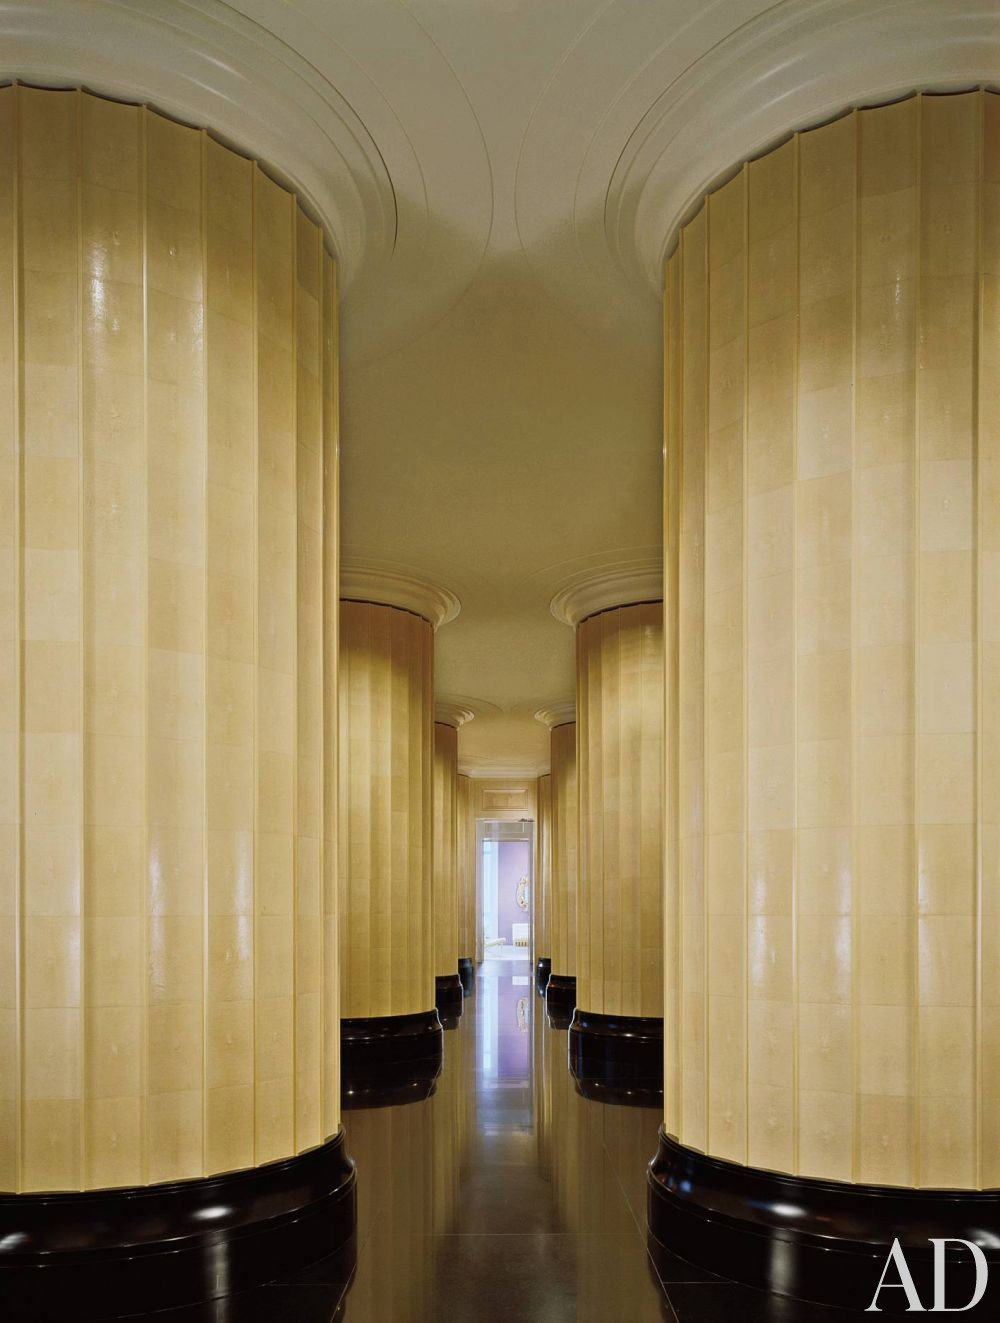 Kingsley made columns_traditional-entrance-hall-mitchell-turnbough-chicago-illinois-200611-4_1000-watermarked.jpg